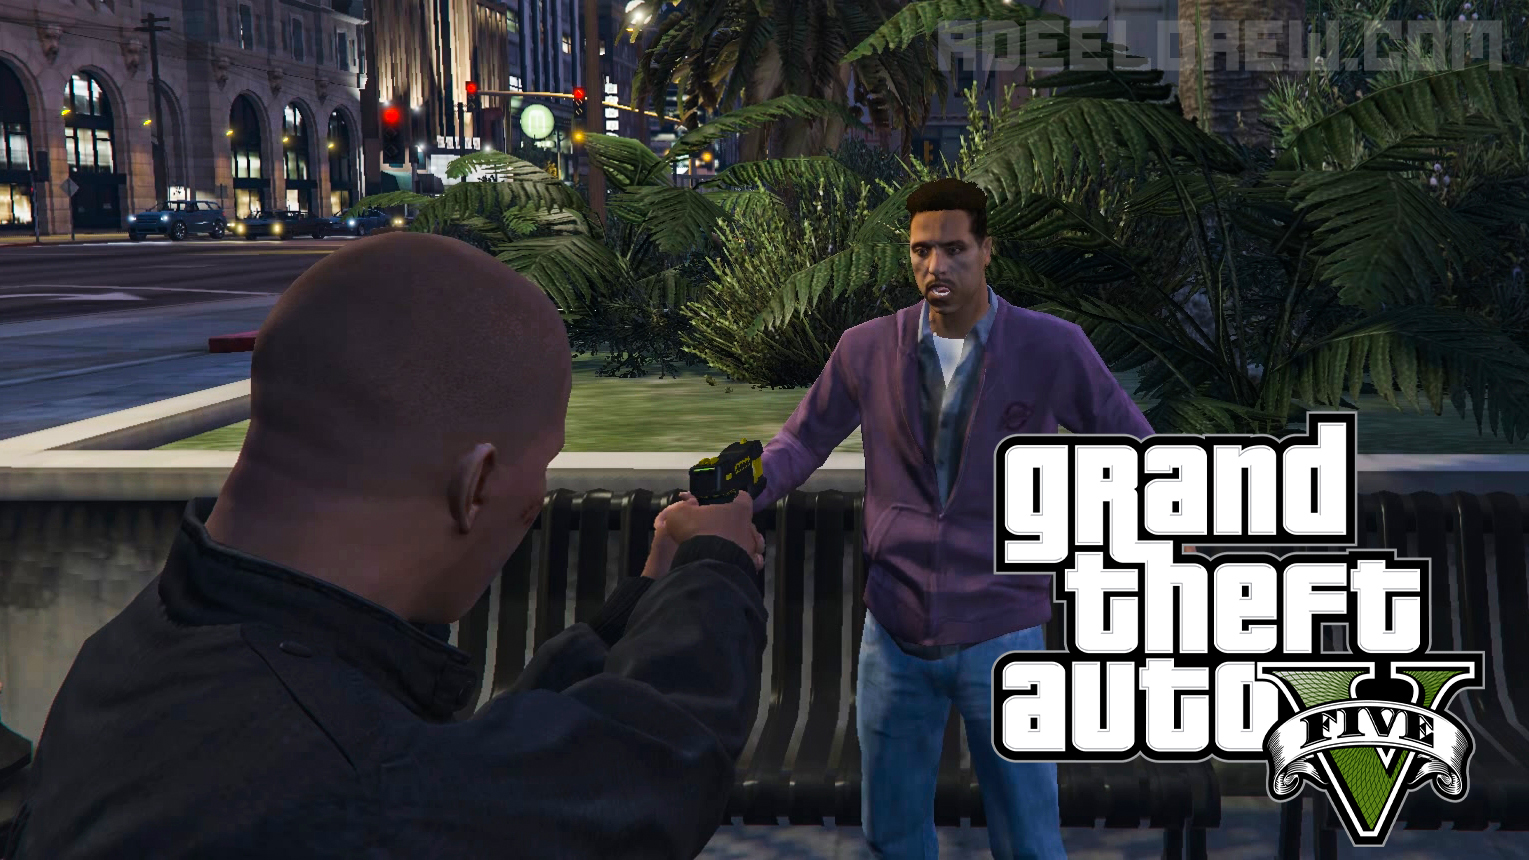 How to Install Low Life Crime Mode in GTA 5 (Rob Peoples by Pointing a Gun on them to Get Money) GTA 5 Modes - AdeelDrew gta 5 mods gta 5 mods pc gta 5 mods xbox one gta 5 modest pelican gta 5 modest menu not working gta 5 modest menu gta 5 mods ps4 gta 5 mods ps4 free gta 5 mods ps4 offline gta 5 mods pc online gta 5 mods nexus gta 5 mods download gta 5 modded account gta 5 mods apk gta 5 adversary modes gta 5 aiming modes all gta 5 mods gta v adversary modes all gta v mods gta 5 modes crazy4 android best gta 5 mods gta 5 boost mode ps4 pro gta 5 beast mode gta 5 bike mod gta 5 bigfoot mode gta 5 bus mod gta 5 build mode gta 5 best mod menu gta 5 cars mods gta 5 cheat codes gta 5 custom modes gta 5 cop mods gta v cheat codes gta 5 independent camera modes how to get mods on gta 5 on pc can you mod gta 5 on pc how to add mods on gta 5 pc gta 5 mods download ps4 gta 5 mods donk gta 5 mods dodge challenger gta 5 mods drag cars gta 5 mods drag race gta 5 mods don't work gta 5 mods drug dealer gta 5 mods d gta 5 mods epic games gta 5 mods epic games reddit gta 5 mods eup gta 5 mods easy install gta 5 mods enb gta 5 mods els gta 5 mods enhanced native trainer gta 5 mods euphoria e-mastersensei gta 5 mods e mastersensei gta 5 mods de terror e mastersensei gta 5 mods desastres naturales gta 5 mods for ps4 gta 5 mods for xbox one gta 5 mods for pc gta 5 mods folder gta 5 mods free gta 5 mods for xbox 360 gta 5 mods for ps3 gta 5 mods fivem gta 5 mods f-15 gta 5 mods f-16 gta 5 mods graphics gta 5 mods game gta 5 mods guide gta 5 mods gameconfig gta 5 mods glock 17 gta 5 mods gameplay gta 5 mods god mode gta 5 mods godzilla g gta 5 mods gta 5 mods g wagon gta 5 mods in hindi gta 5 casino heist modes gta 5 how to host modes gta 5 halloween game modes how to get mods in gta 5 how to install mods in gta 5 how to get mods on gta 5 ps4 gta 5 mods install gta 5 mods infinite loading screen gta 5 mods iphone gta 5 mods install pc gta 5 mods interiors gta 5 mods iron man gta 5 mods infinite money gta 5 mods inside jelly gta 5 mods gta 5 mods list gta 5 mods liberty city gta 5 mods la roads gta 5 mods ls life gta 5 modz legit gta 5 mods lspd pack gta 5 mods la revo gta 5 mods lspdfr gta 5 mods l gta 5 mods menu gta 5 mods money gta 5 mods menyoo gta 5 mods multiplayer gta 5 mods mac gta 5 mods map editor gta 5 mods manager gta 5 mods macbook gta 5 fivem mods gta 5 mods not working gta 5 mods not working after update gta 5 mods natural vision remastered gta 5 mods nativeui gta 5 mods not showing up gta 5 mods no virus gta 5 mods natural disasters gta 5 mods online gta 5 mods on ps4 gta 5 mods on xbox one gta 5 mods on pc gta 5 mods on steam gta 5 mods online ps4 gta 5 mods on epic games gta 5 mods on chromebook mods para o gta 5 mods para o gta 5 ps4 gta 5 mods ps3 gta 5 mods ps4 story mode gta 5 mods ps4 online gta 5 mods quicksilver gta 5 mods quantv gta 5 mods quadra gta 5 mods que es gta 5 mods quad gta 5 mods quora gta 5 mod quantum break gta 5 mod apk gta v race modes gta 5 self radio modes gta 5 real life mods how to set up races in gta 5 suzuki wagon r gta 5 mods r mods gta 5 gta 5 pc mods fr gta 5 mods steam gta 5 mods simple trainer gta 5 mods story mode gta 5 mods single player gta 5 mods script hook gta 5 mods sites gta 5 mods server gta 5 mods spiderman xbox one s gta 5 mods tesla model s gta 5 mods gta 5 mods replace buffalo s gta 5 mods s gta 5 mods mercedes s class gta 5 mods xbox series s gta 5 mods s class are there gta 5 mods for xbox one gta 5 mods typical gamer gta 5 mods to make it realistic gta 5 mods that work online gta 5 mods tutorial gta 5 mods trainer gta 5 mods the flash gta 5 mods to fivem converter gta 5 mods tsunami gta 5 mods t-max gta 5 mods usb xbox one gta 5 mods unlimited money gta 5 mods update gta 5 mods ultra realistic graphics gta 5 mods unblocked gta 5 mods unlocked gta 5 mods unmarked gta 5 mods usb gta 5 mods vortex gta 5 mods vice city gta 5 mods vanilla works gta 5 mods vehicles gta 5 mods vstancer gta 5 mods vehicle pack gta 5 mods visualv gta 5 mods van v modded gta 5 script hook v gta 5 mods trainer v gta 5 mods cts v gta 5 mods 5 mods gta v gta 5 mods script hook v dot net gta v 5 mods download gta 5 mods website gta 5 mods with friends gta 5 mods won't load gta 5 mods with automatic installation gta 5 mods world of variety gta 5 mods war gta 5 mods weapons gta 5 mods wheels gta 5 mods w gta 5 mods xbox 360 gta 5 mods xbox one story mode gta 5 mods xbox one offline without usb gta 5 mods xbox one online gta 5 mods xbox series x gta 5 mods xbox one offline gta 5 mods xbox one police xbox one x gta 5 mods xbox series x gta 5 mods tesla model x gta 5 mods gta 5 xbox 360 mods can you get gta 5 mods on xbox one can you mod gta 5 on xbox one can you put gta mods on xbox one grand theft auto 5 modes gta 5 mods dragon ball z z mods gta 5 gta 5 mods 100 gta 5 mods 1911 gta 5 mods 1.37 gta 5 mods 1.35 gta 5 mods 1.33 gta 5 mods 1.33 ps4 gta 5 mods 125 gta 5 mods 1.50 formula 1 gta 5 mods gta 5 xbox 1 mods download gta 5 mods lspdfr 0.4 1 how to get gta 5 mods xbox one gta 5 mods 2021 gta 5 mods 2020 gta 5 mods 2 gta 5 mods 2021 pc gta 5 mods 2021 version movil gta 5 mods 2019 gta 5 mods 2 player gta 5 mods 2019 pc gta 5 real life mods 2 gta 5 mods persistence 2 gta 5 mods just cause 2 gta 5 buffalo 2 mods rdr2 mods gta 5 gta 5 mods 360 gta 5 mods 3dm gta 5 mods xbox 360 offline gta 5 mods xbox 360 story mode gta 5 mods xbox 360 offline usb gta 5 mods xbox 360 download usb gta 5 mods xbox 360 online gta 5 with 3 modes playstation 3 gta 5 mods gta 5 with 3 mods gta 5 with 3 mods download gta 5 with 3 mods apk gta 5 mods just cause 3 gta 5 mods tesla model 3 mods para play 3 gta 5 gta 5 mods 4 wheeler gta 5 mods 4k gta 5 mods 4 ps4 gta 5 mods 4 crazy android gta 5 mods 4x4 gta 5 mods 4k water 488 gtb gta 5 mods gta 4 gta 5 mods open 4 gta 5 mods gta 5 mods crazy 4 android gta 5 mods gta 4 cars gta 5 mods 5m gta 5 mods 5 5 gta 5 modded accounts gta 5 mods script hook 5 top 5 gta 5 mods 5 mods gta 5 download 5 mods gta 5 ps4 5 mods gta 5 xbox 360 5 gta 5 mods 5 mods gta 5 ps3 gta 5 online gta 5 mods gta 5 mods 6x6 gta 5 mods 6 stars gta 5 mods gta 6 gta 5 mods ps4 6.72 gta 5 mods mclaren 600lt gta 5 mods siren head scp-6789 lamborghini svj 63 gta 5 mods mods gta 5 xt 660 where's gta 6 gta 5 mods 7.02 gta 5 mods 7.50 gta 5 mods 7.51 gta 5 mods 7.00 gta 5 mods 7.55 gta 5 mods 7.02 ps4 gta 5 mods crazy4android 707 mb download gta 5 mods ps4 7.00 gta 5 mods windows 7 gta 5 mods golf 7 gta 5 mods 8.03 gta 5 mods 8.01 gta 5 mods 8.00 gta 5 mods 8k sprx gta 5 mods 8645 ps4 gta 5 mods 8.03 maruti 800 gta 5 mods gta 5 mods ps4 8.00 gta 5 mods sato8 gta 5 mods mazda rx 8 9 gta 5 mods gta 5 mods porsche 911 gta 5 90s mods 911 gta 5 mods gta 5 car mods porsche 911